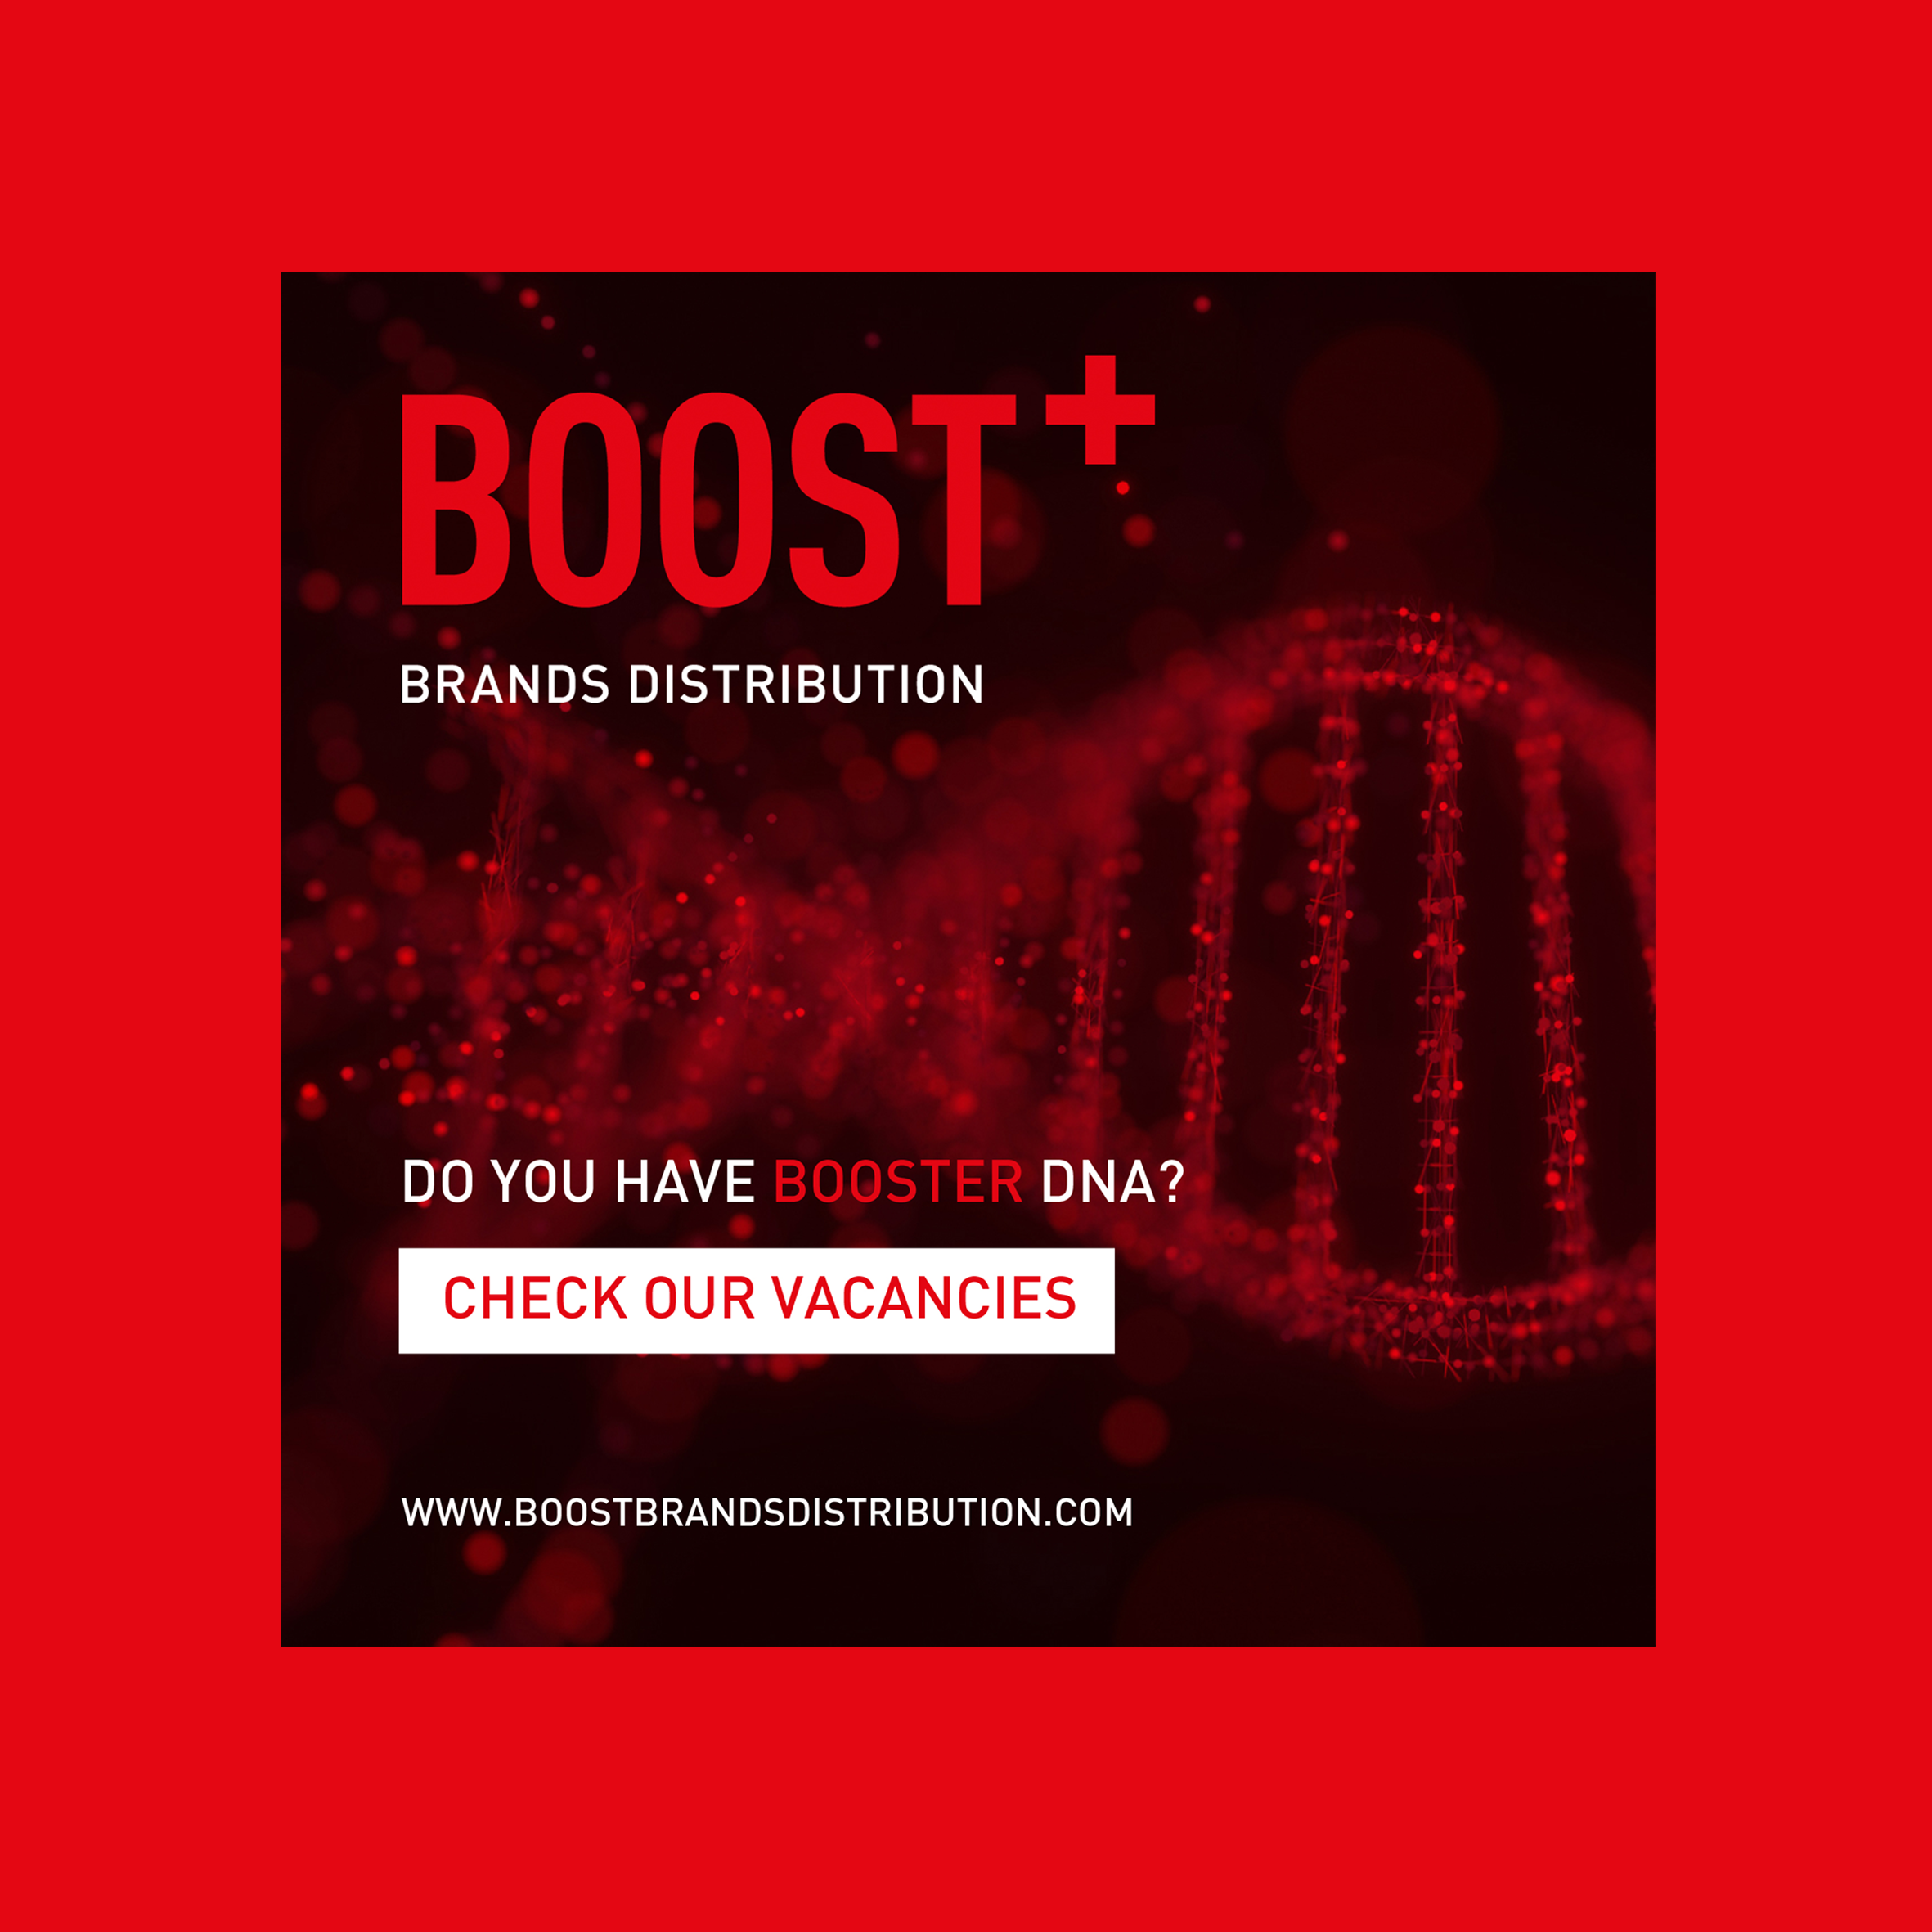 Boost+ brands distribution